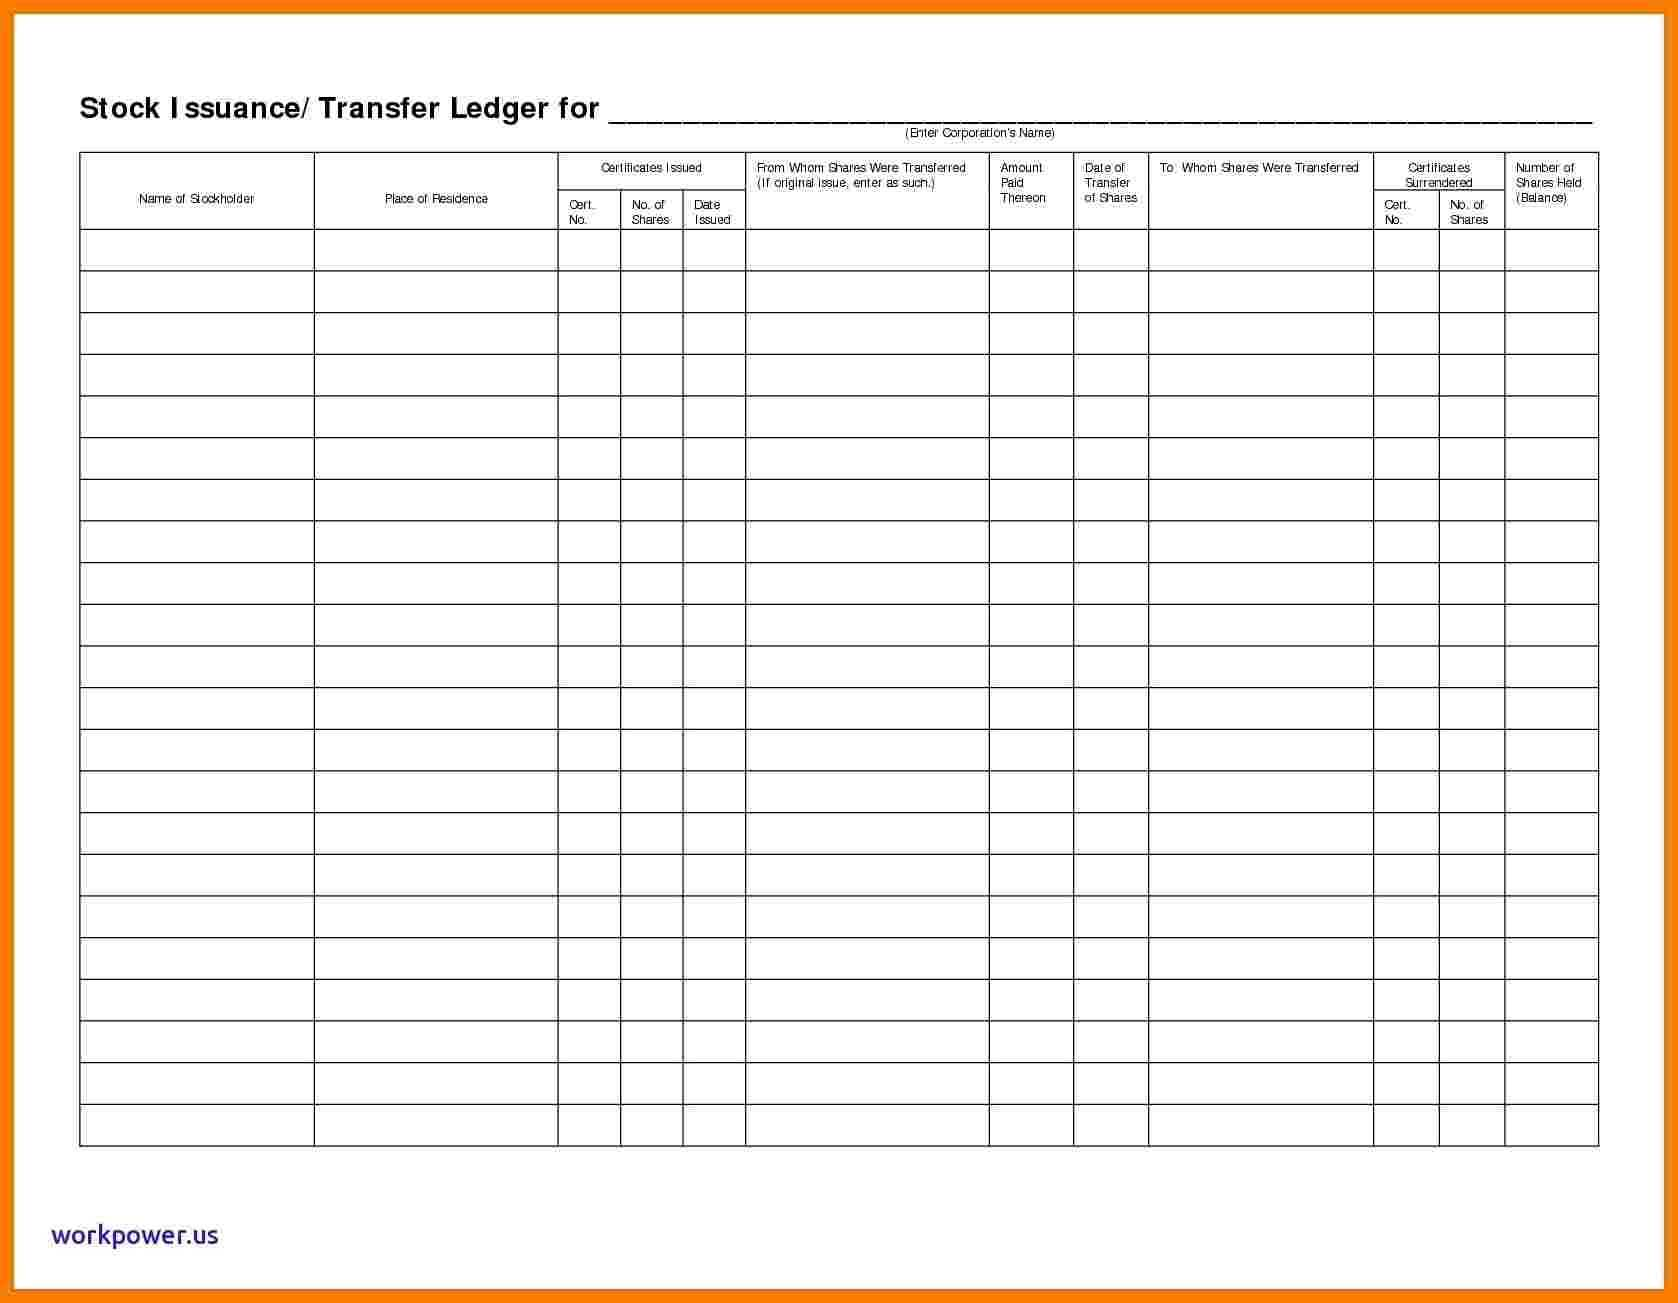 5 Stock Ledger Excel Ledger Review